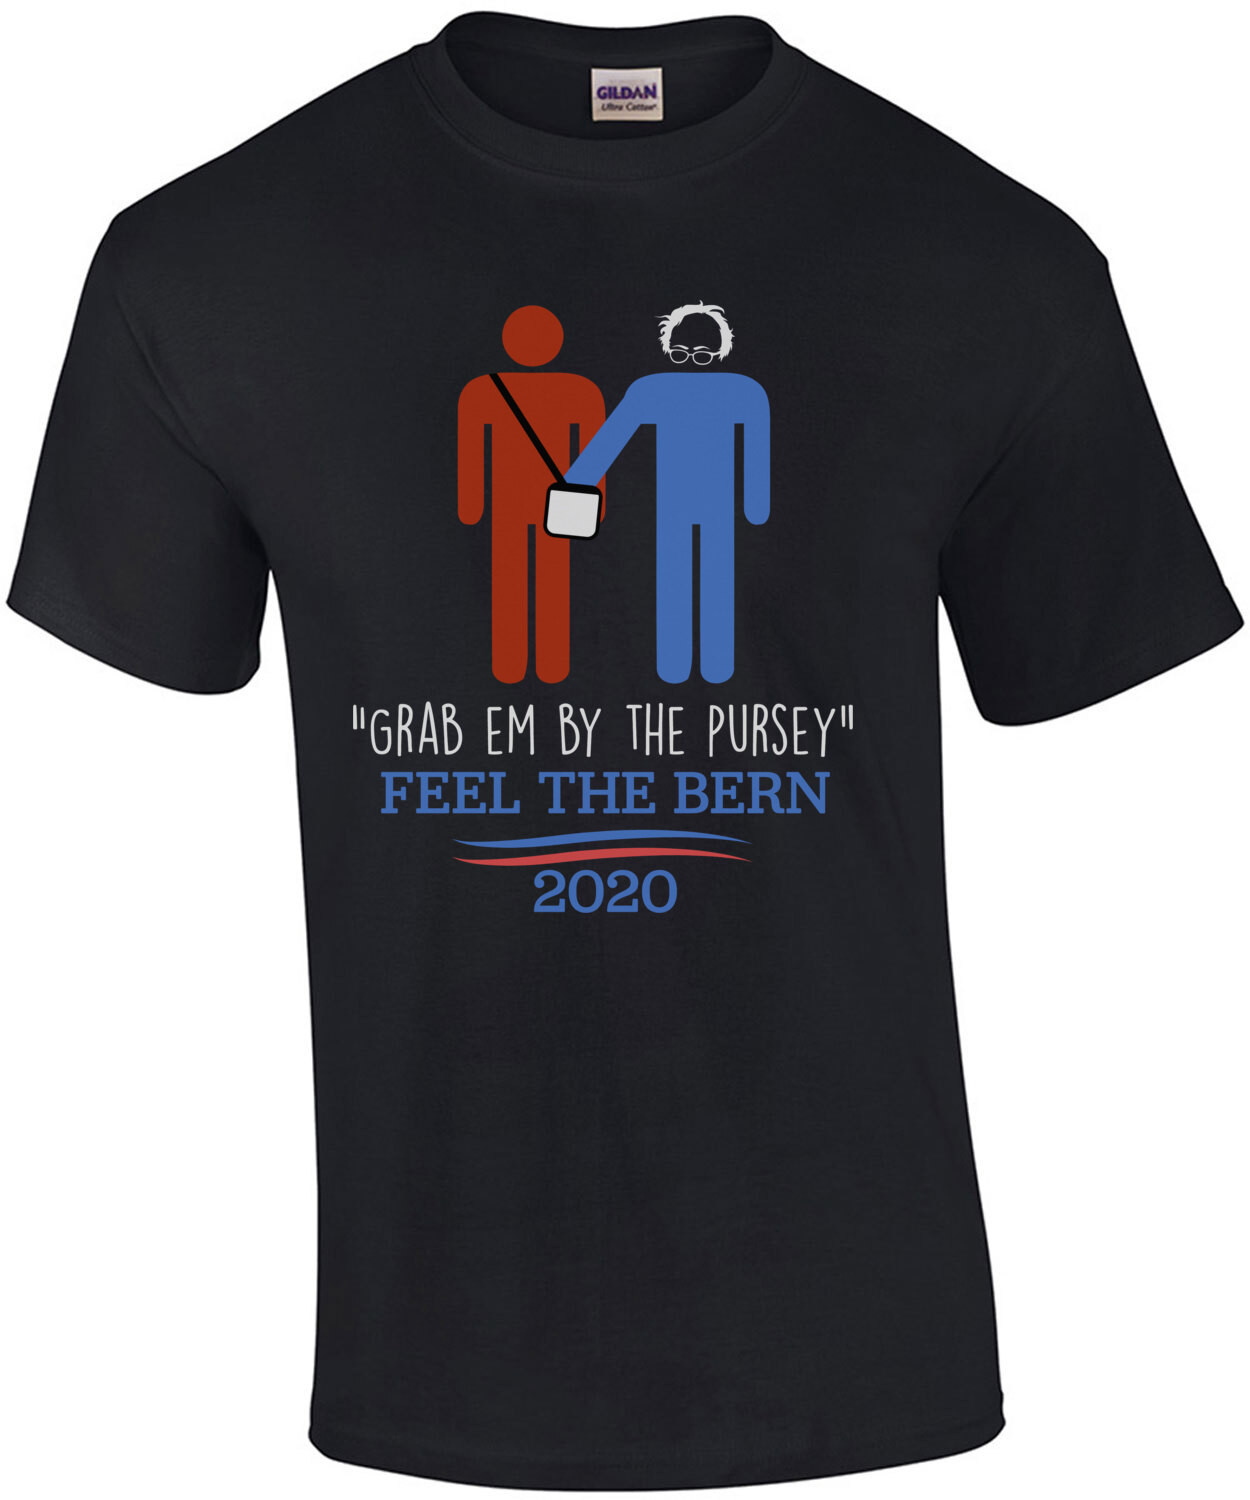 Grab 'Em By The Pursey Anti-Bernie Sanders Funny Political T-Shirt - Election 2020 T-Shirt